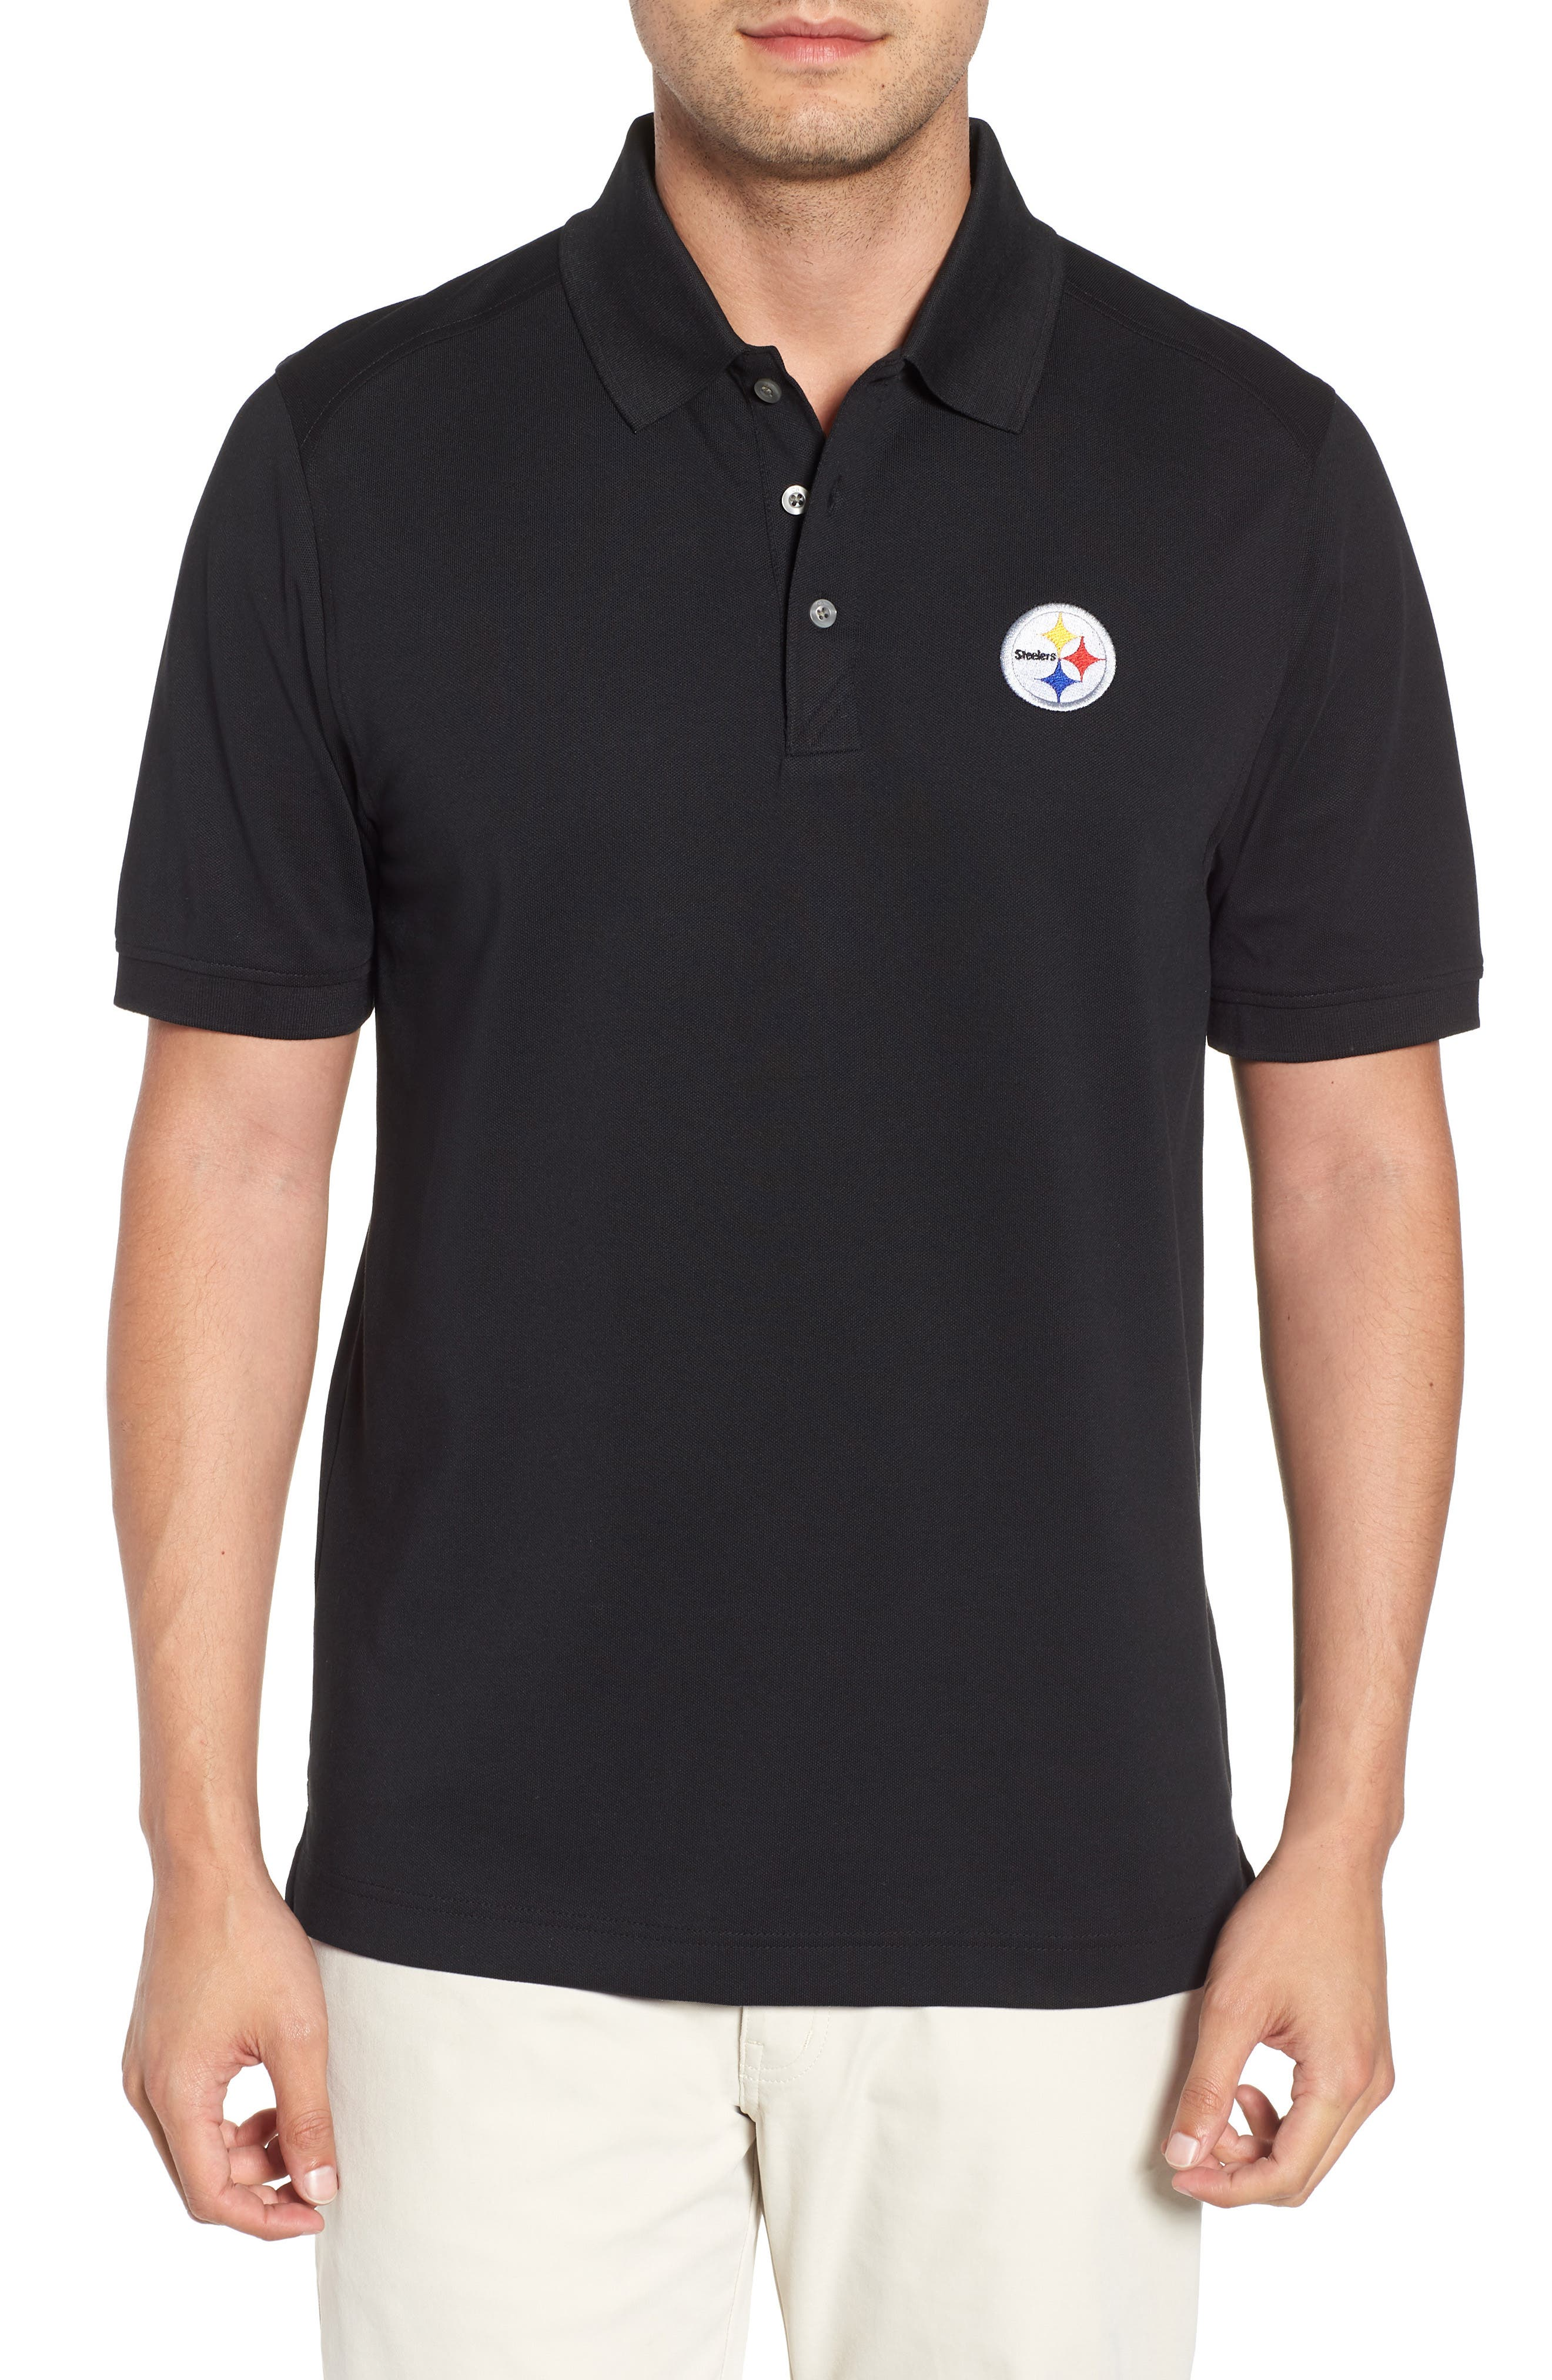 Pittsburgh Steelers - Advantage Regular Fit DryTec Polo,                             Main thumbnail 1, color,                             001